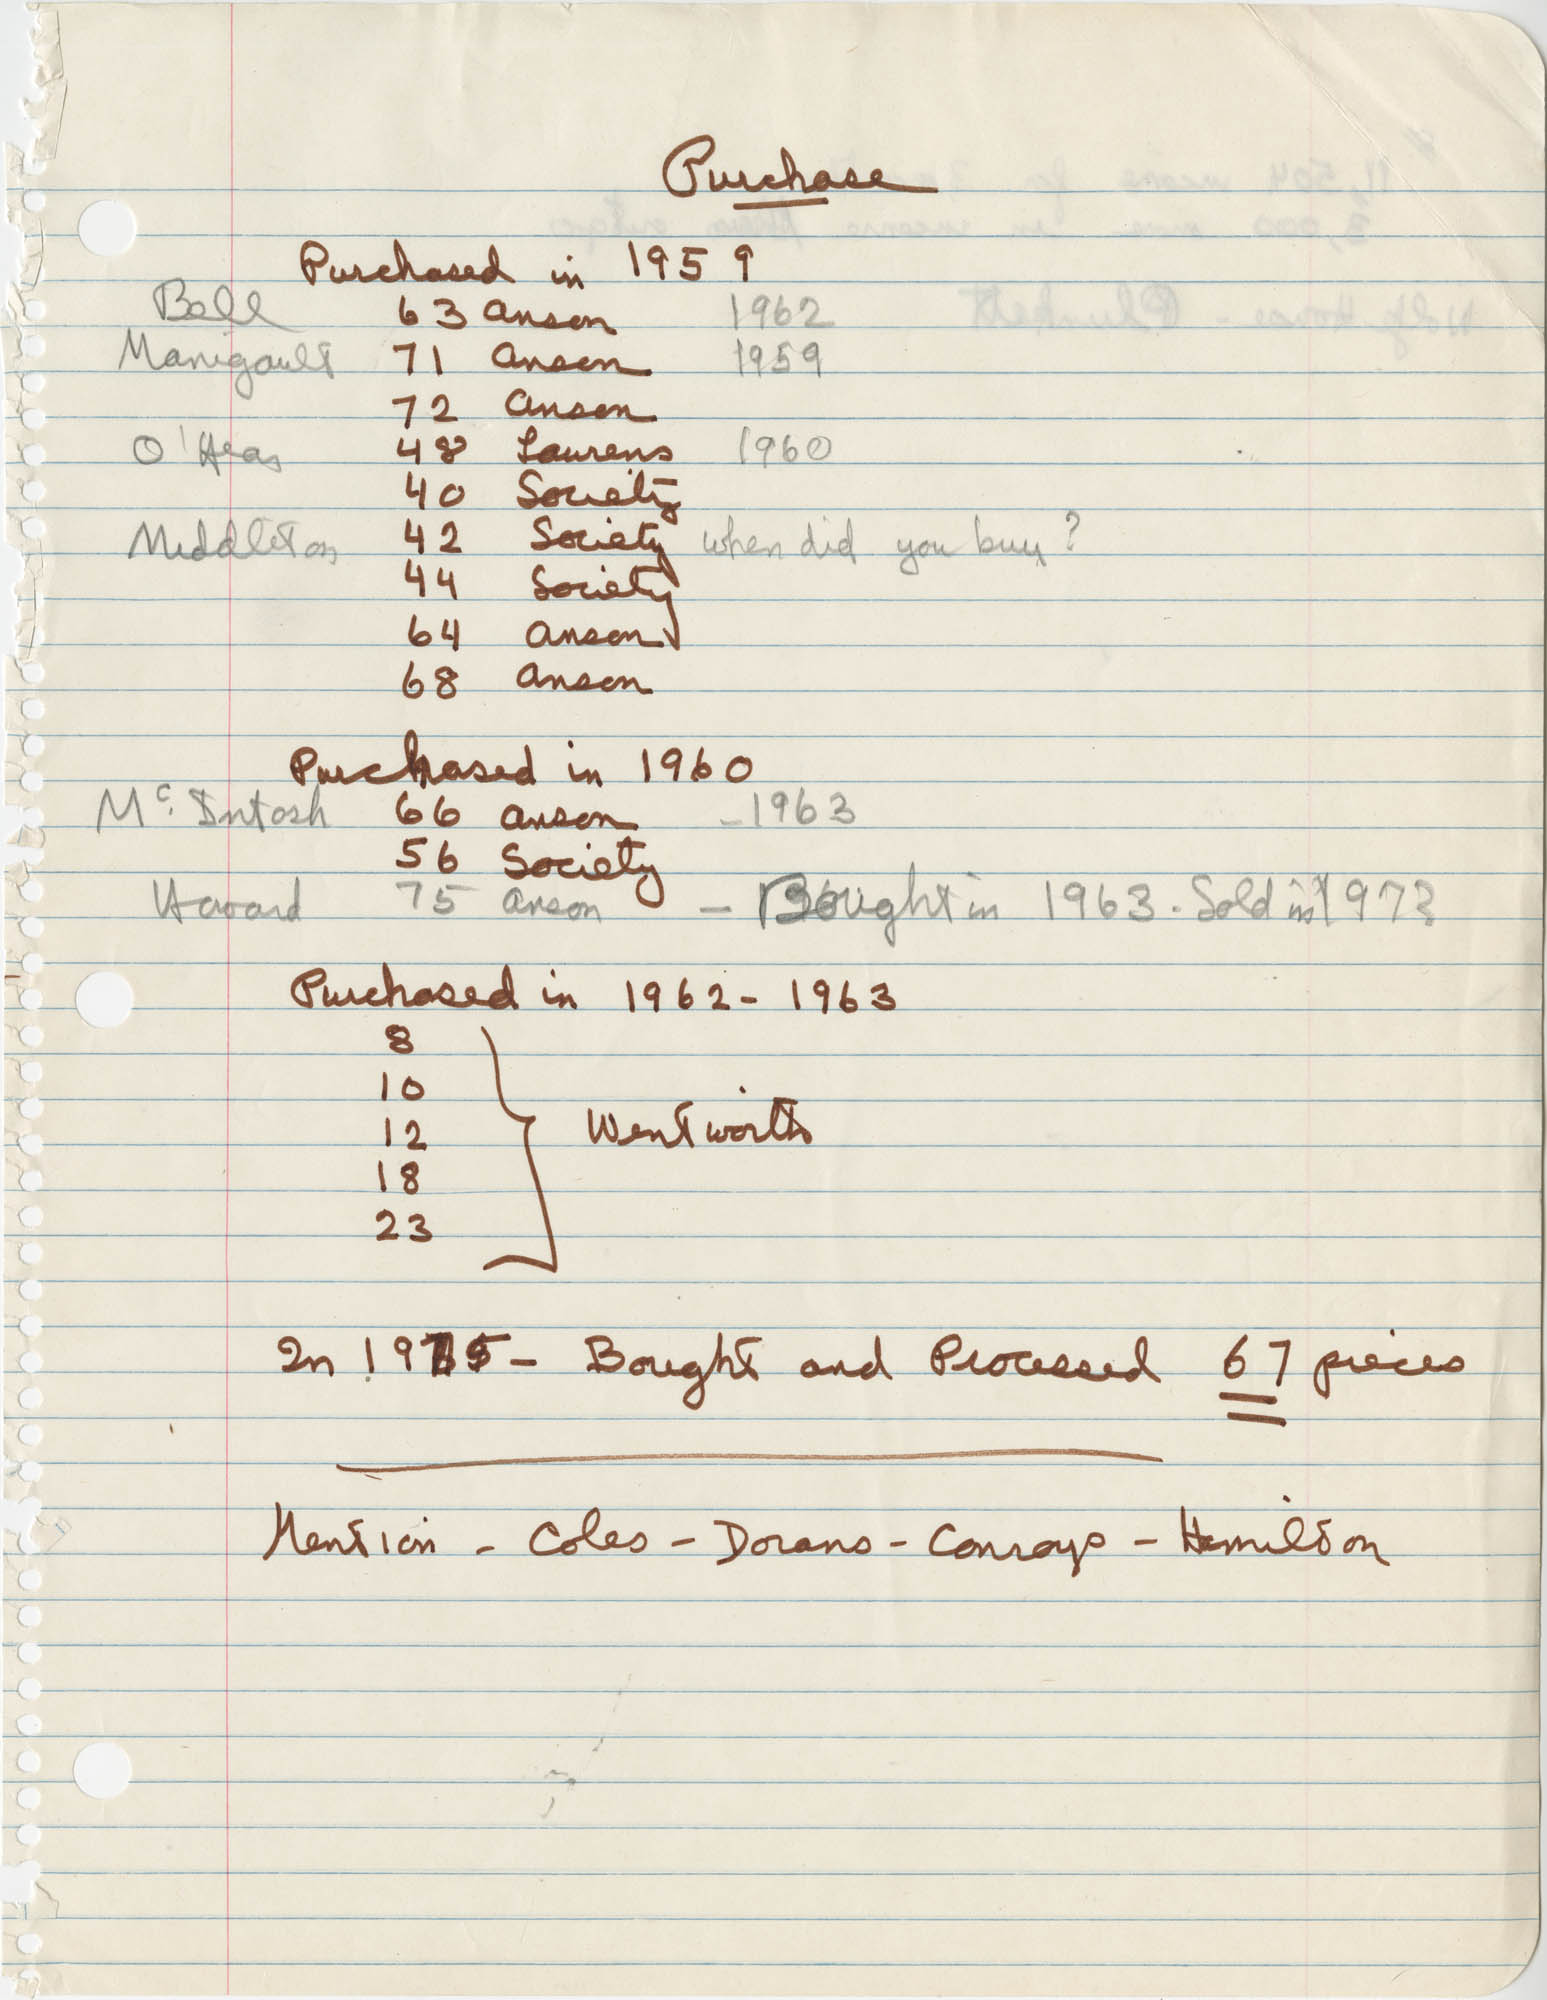 List of properties purchased from 1959-1975